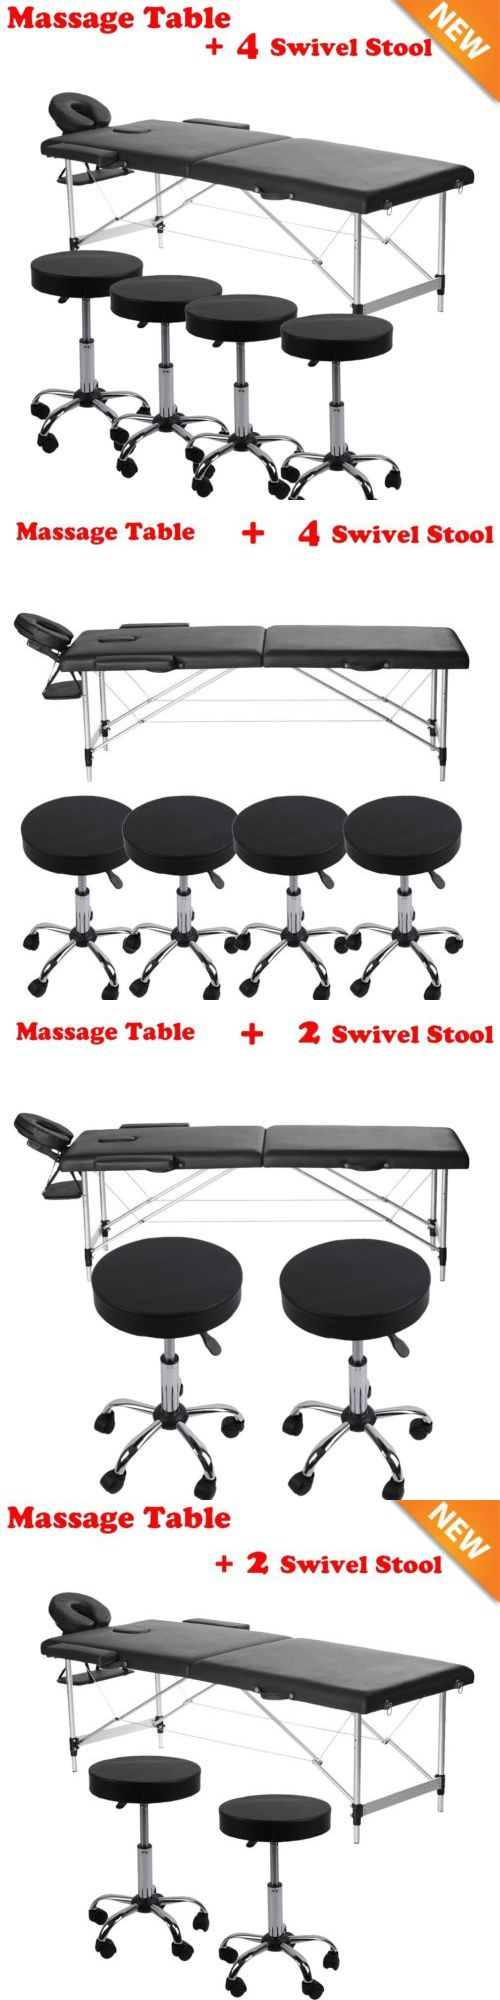 Salon and Spa Supplies: Adjustable Salon Spa Black Massage Bed Tattoo Chair Table Beauty Basket W Stool -> BUY IT NOW ONLY: $124.84 on eBay!